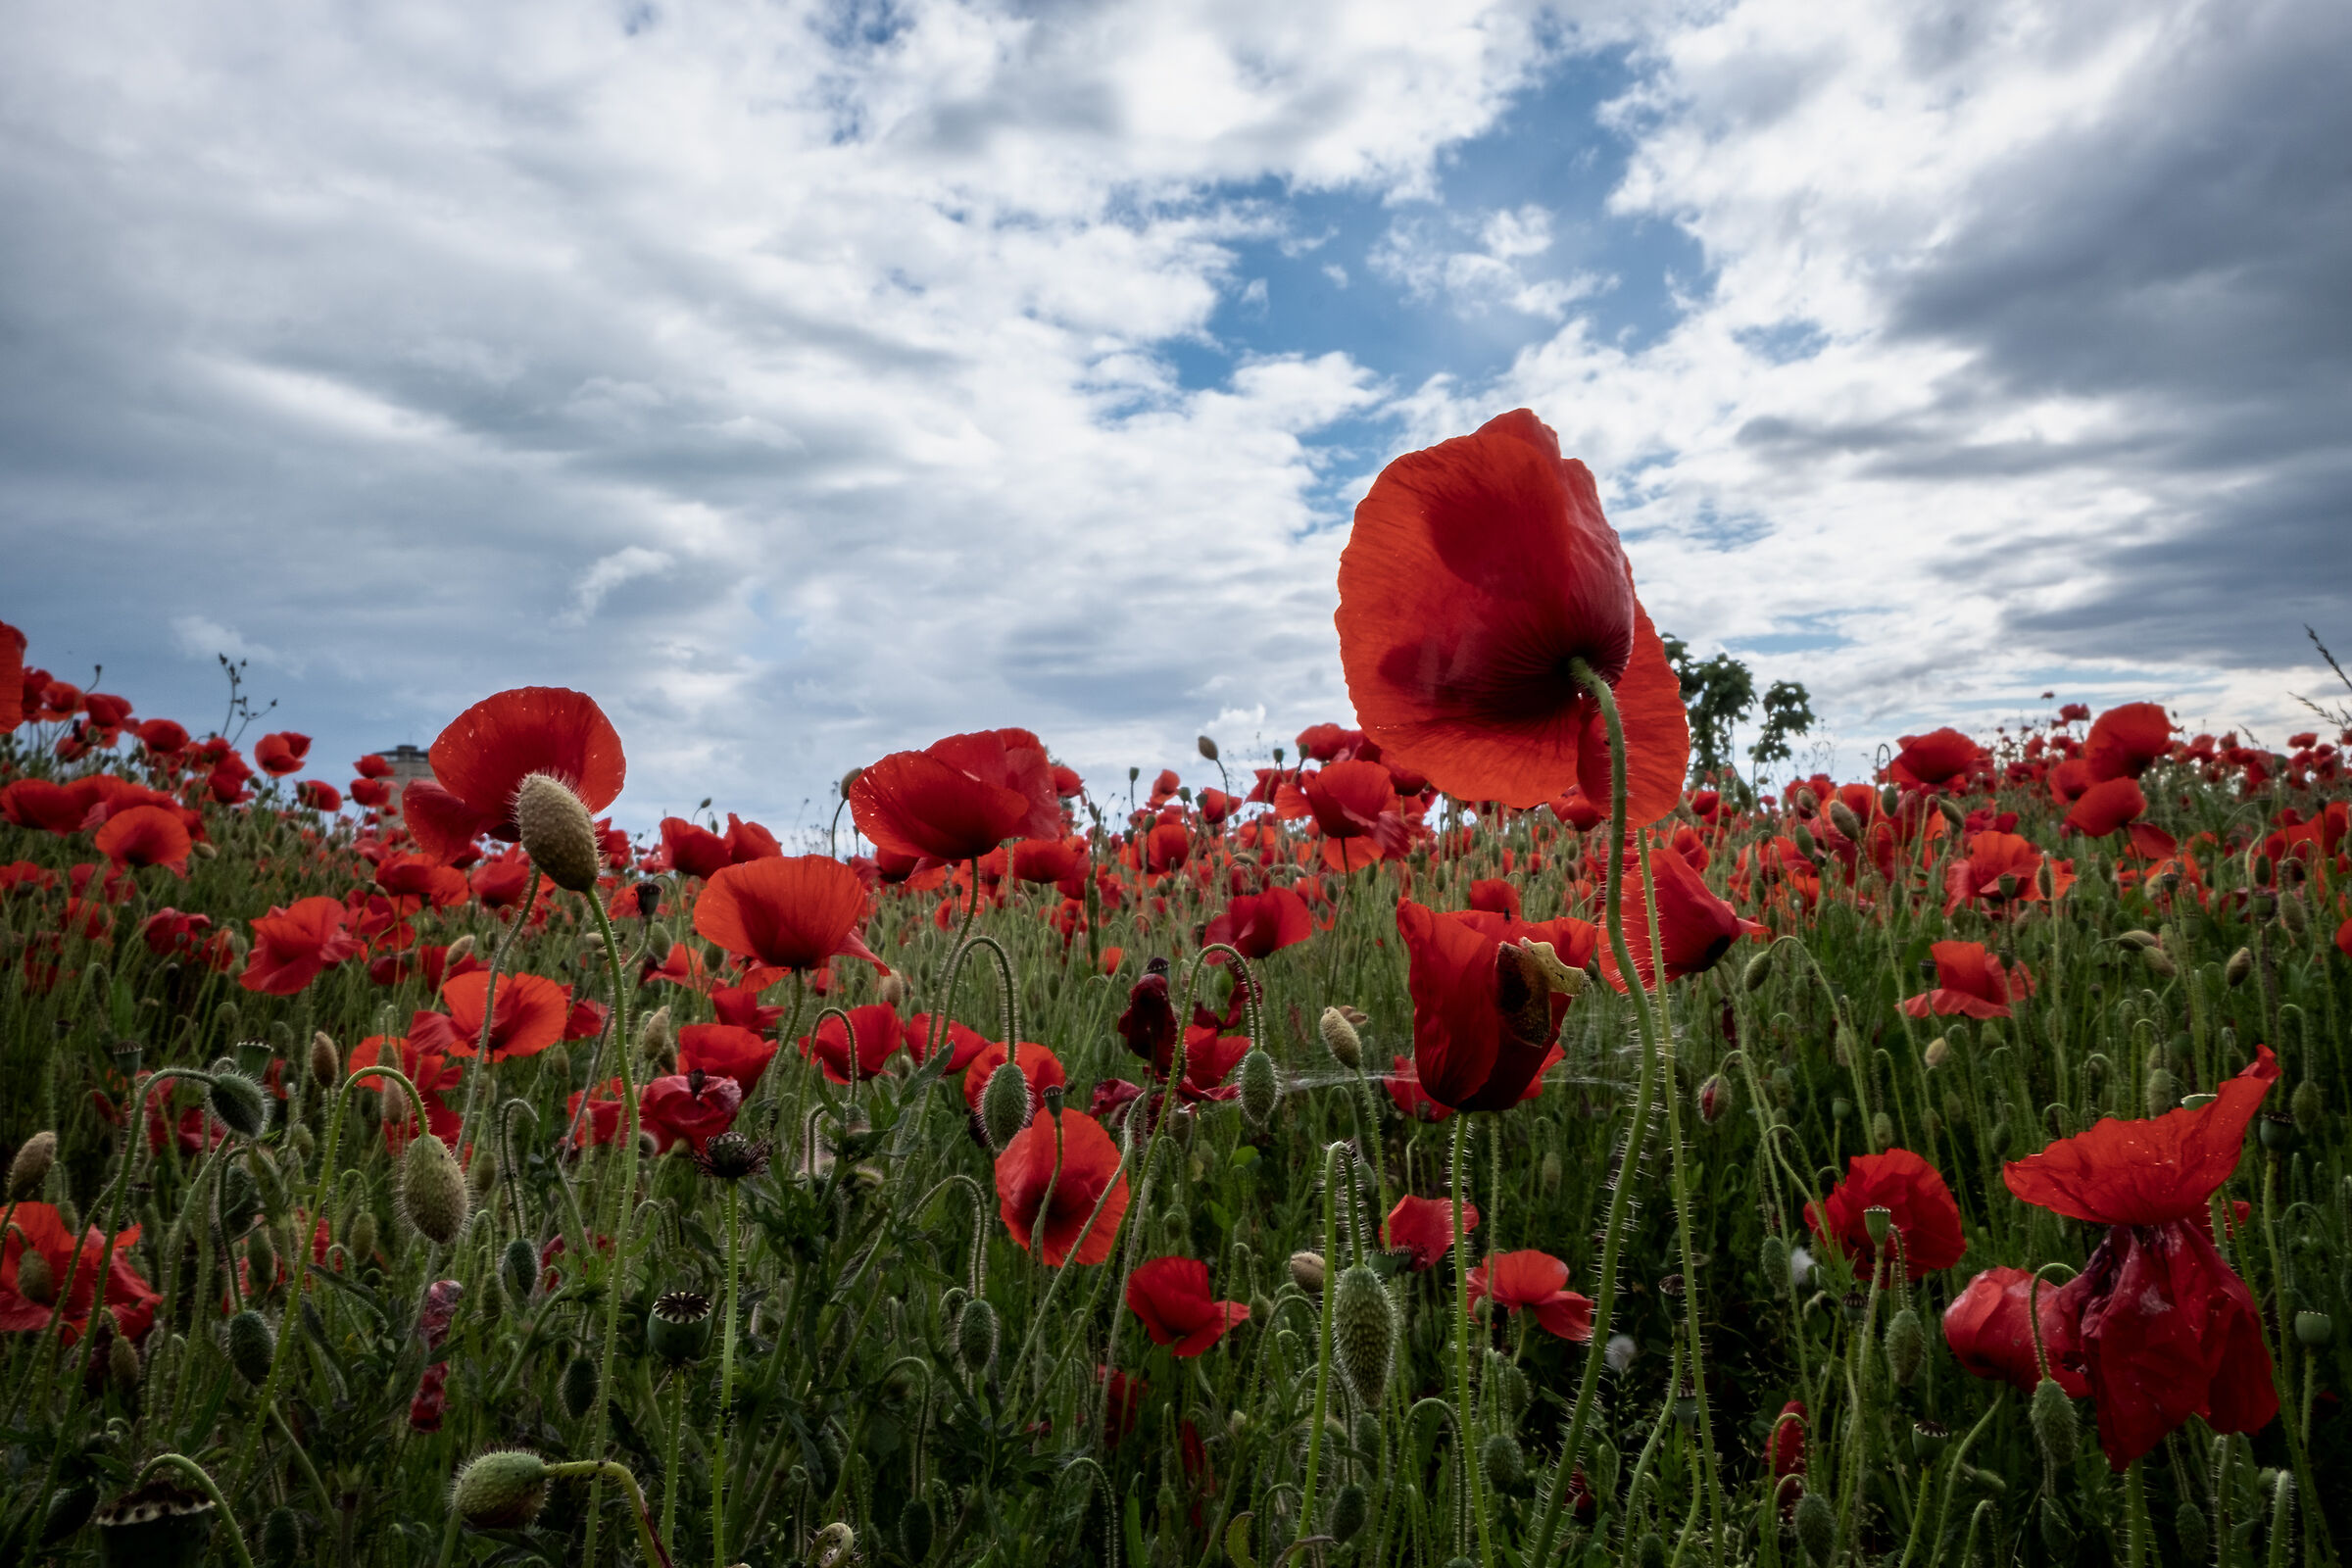 The field of poppies...